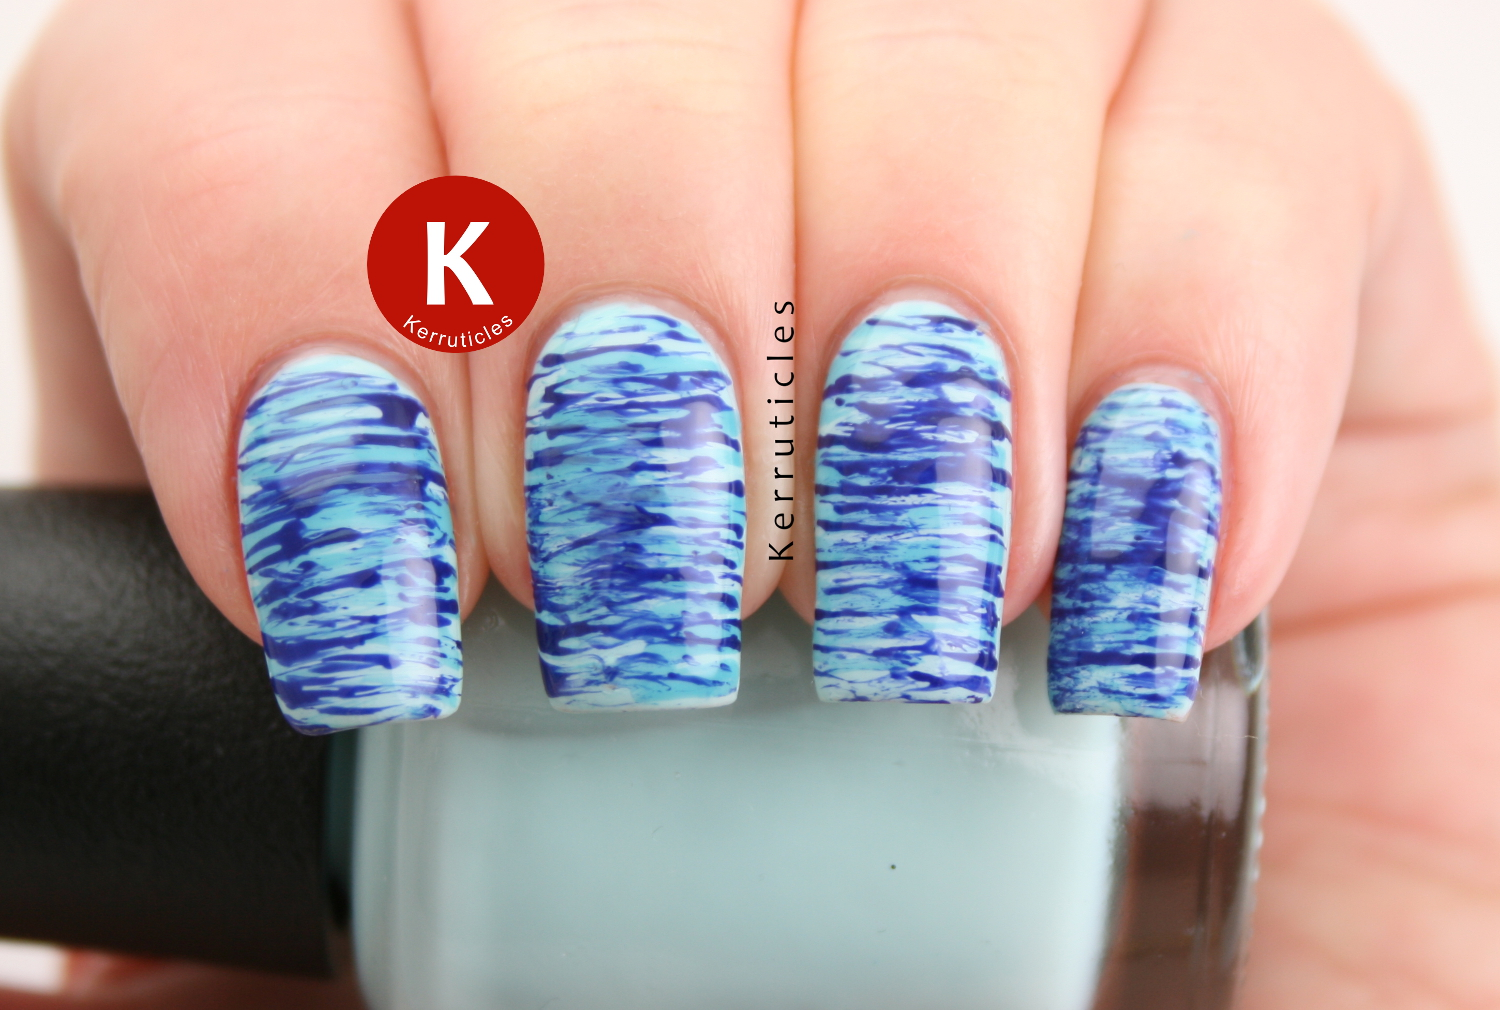 Blue fan brush nails 40 great nail art ideas kerruticles blue fan brush nails prinsesfo Image collections